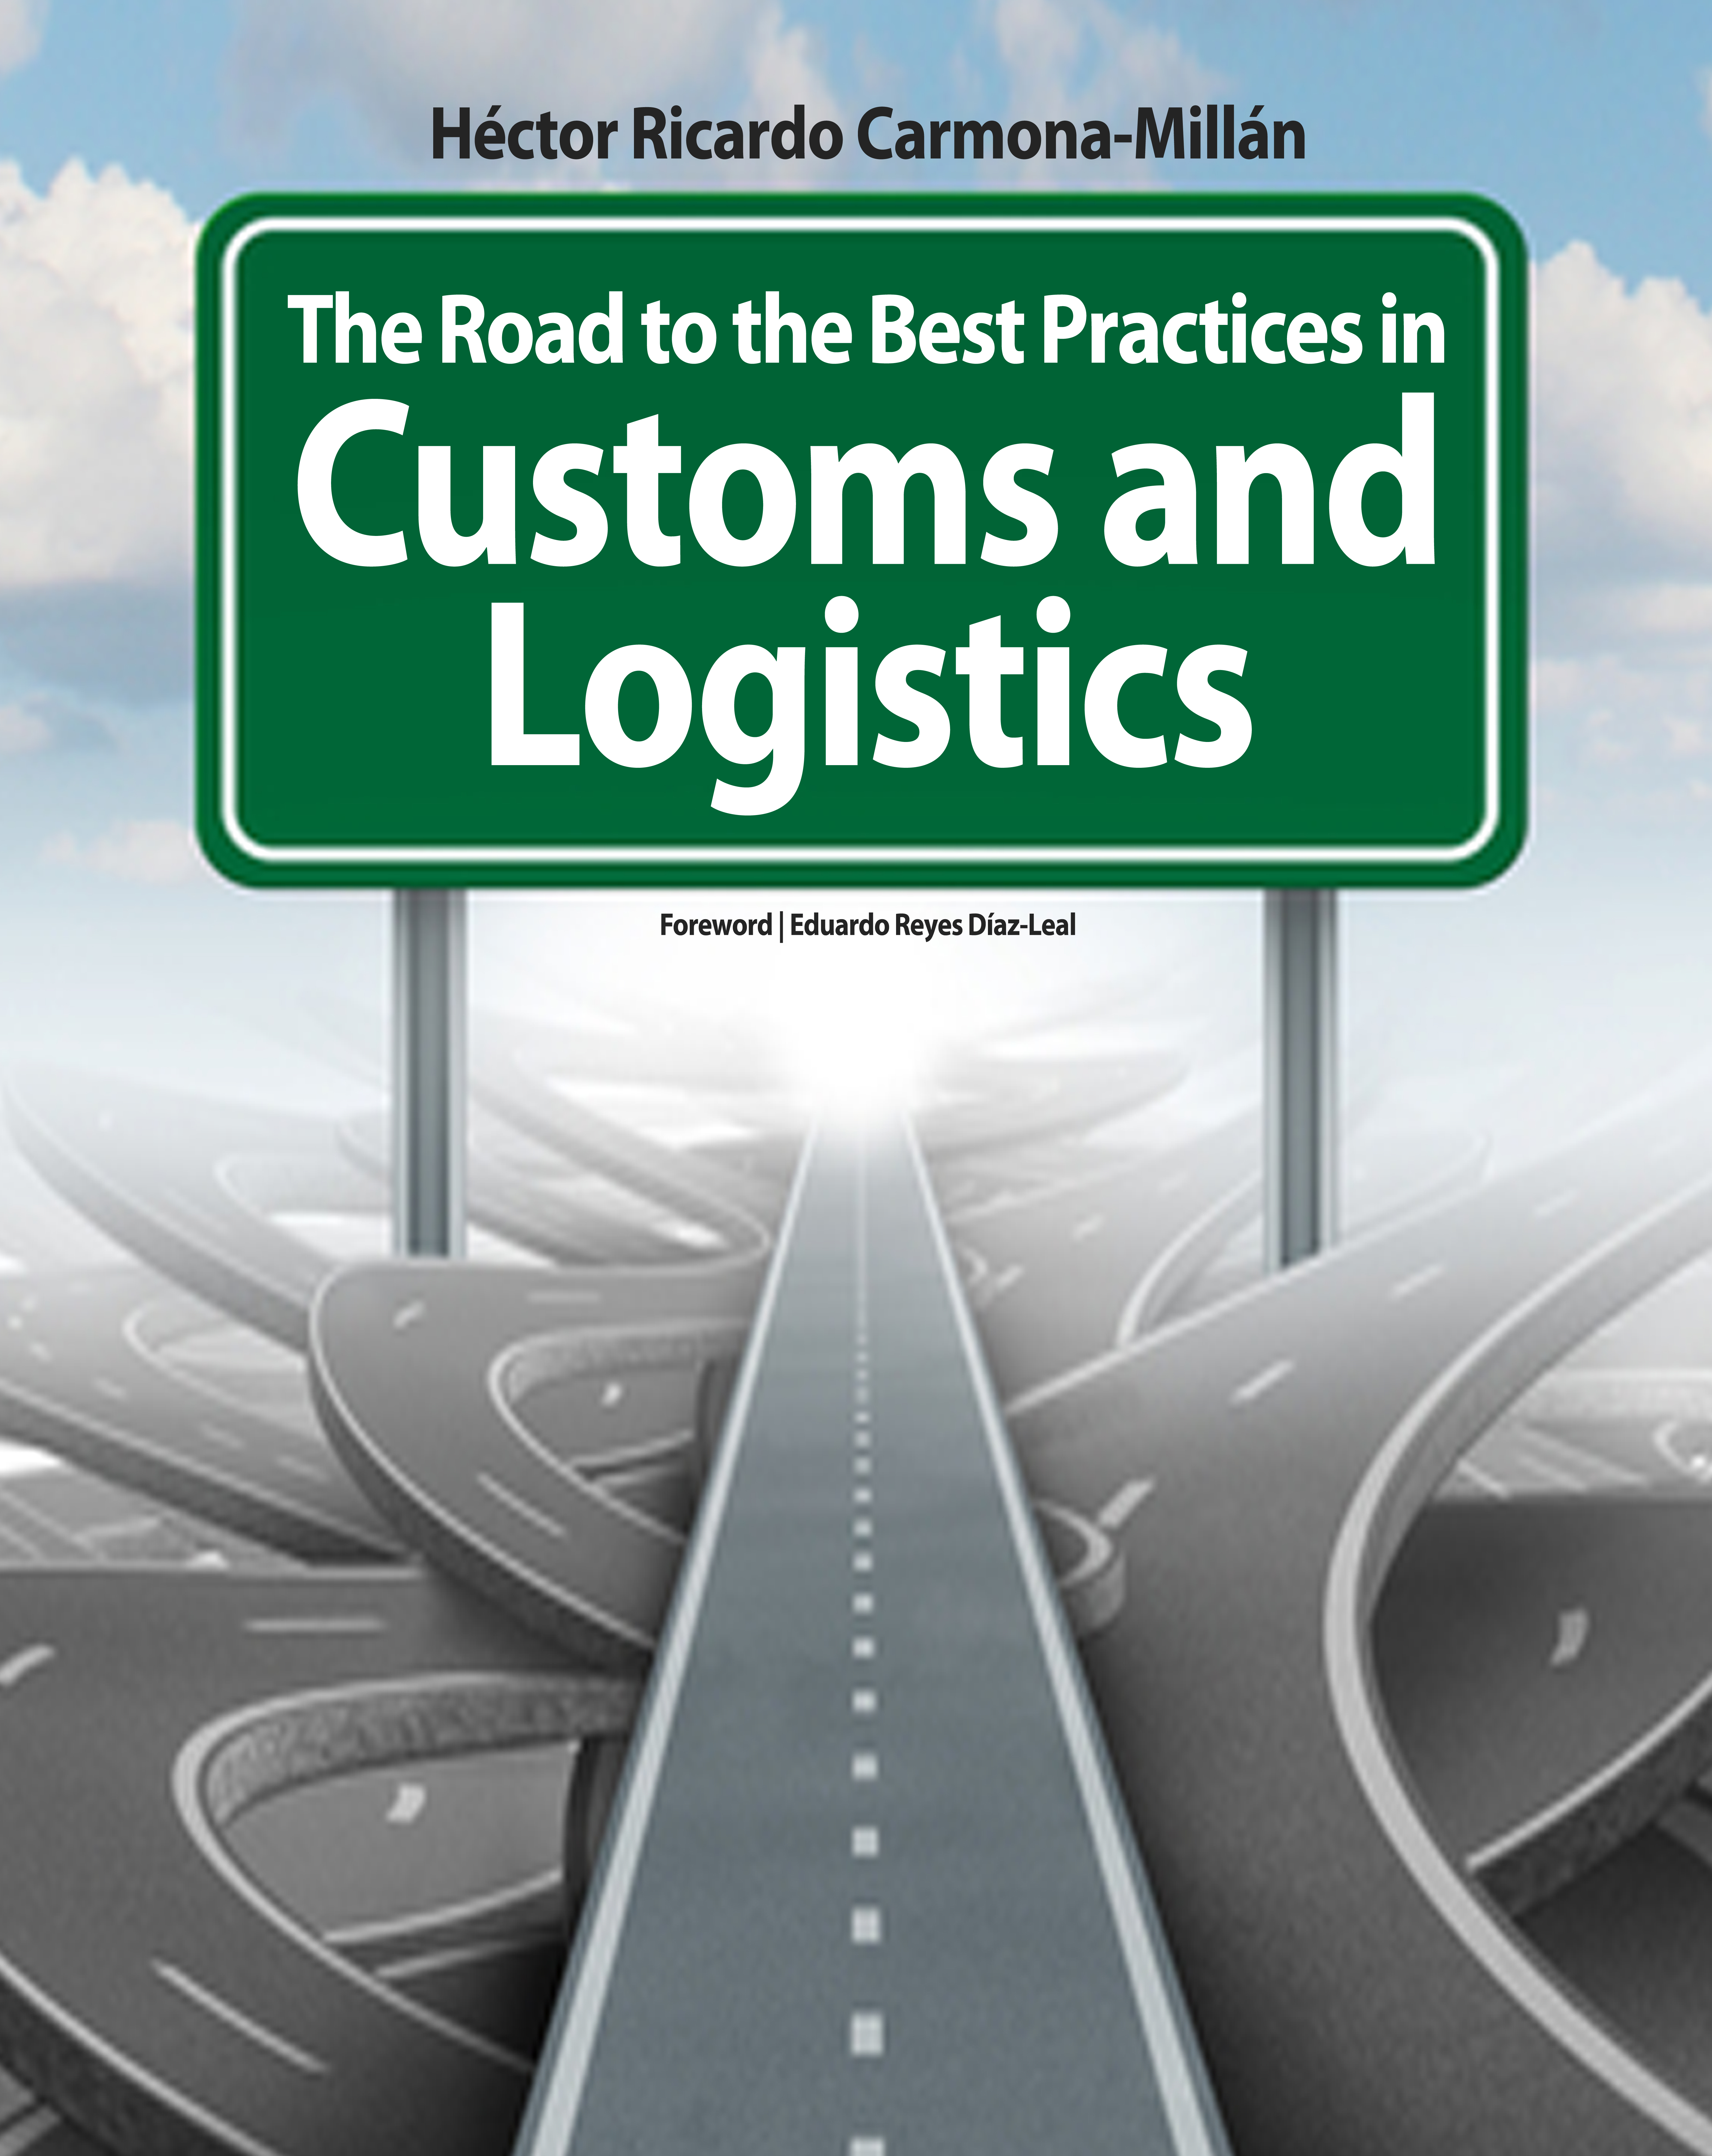 The Road to the Best Practices in Customs and Logistics  by  Héctor Ricardo Carmona-Millán